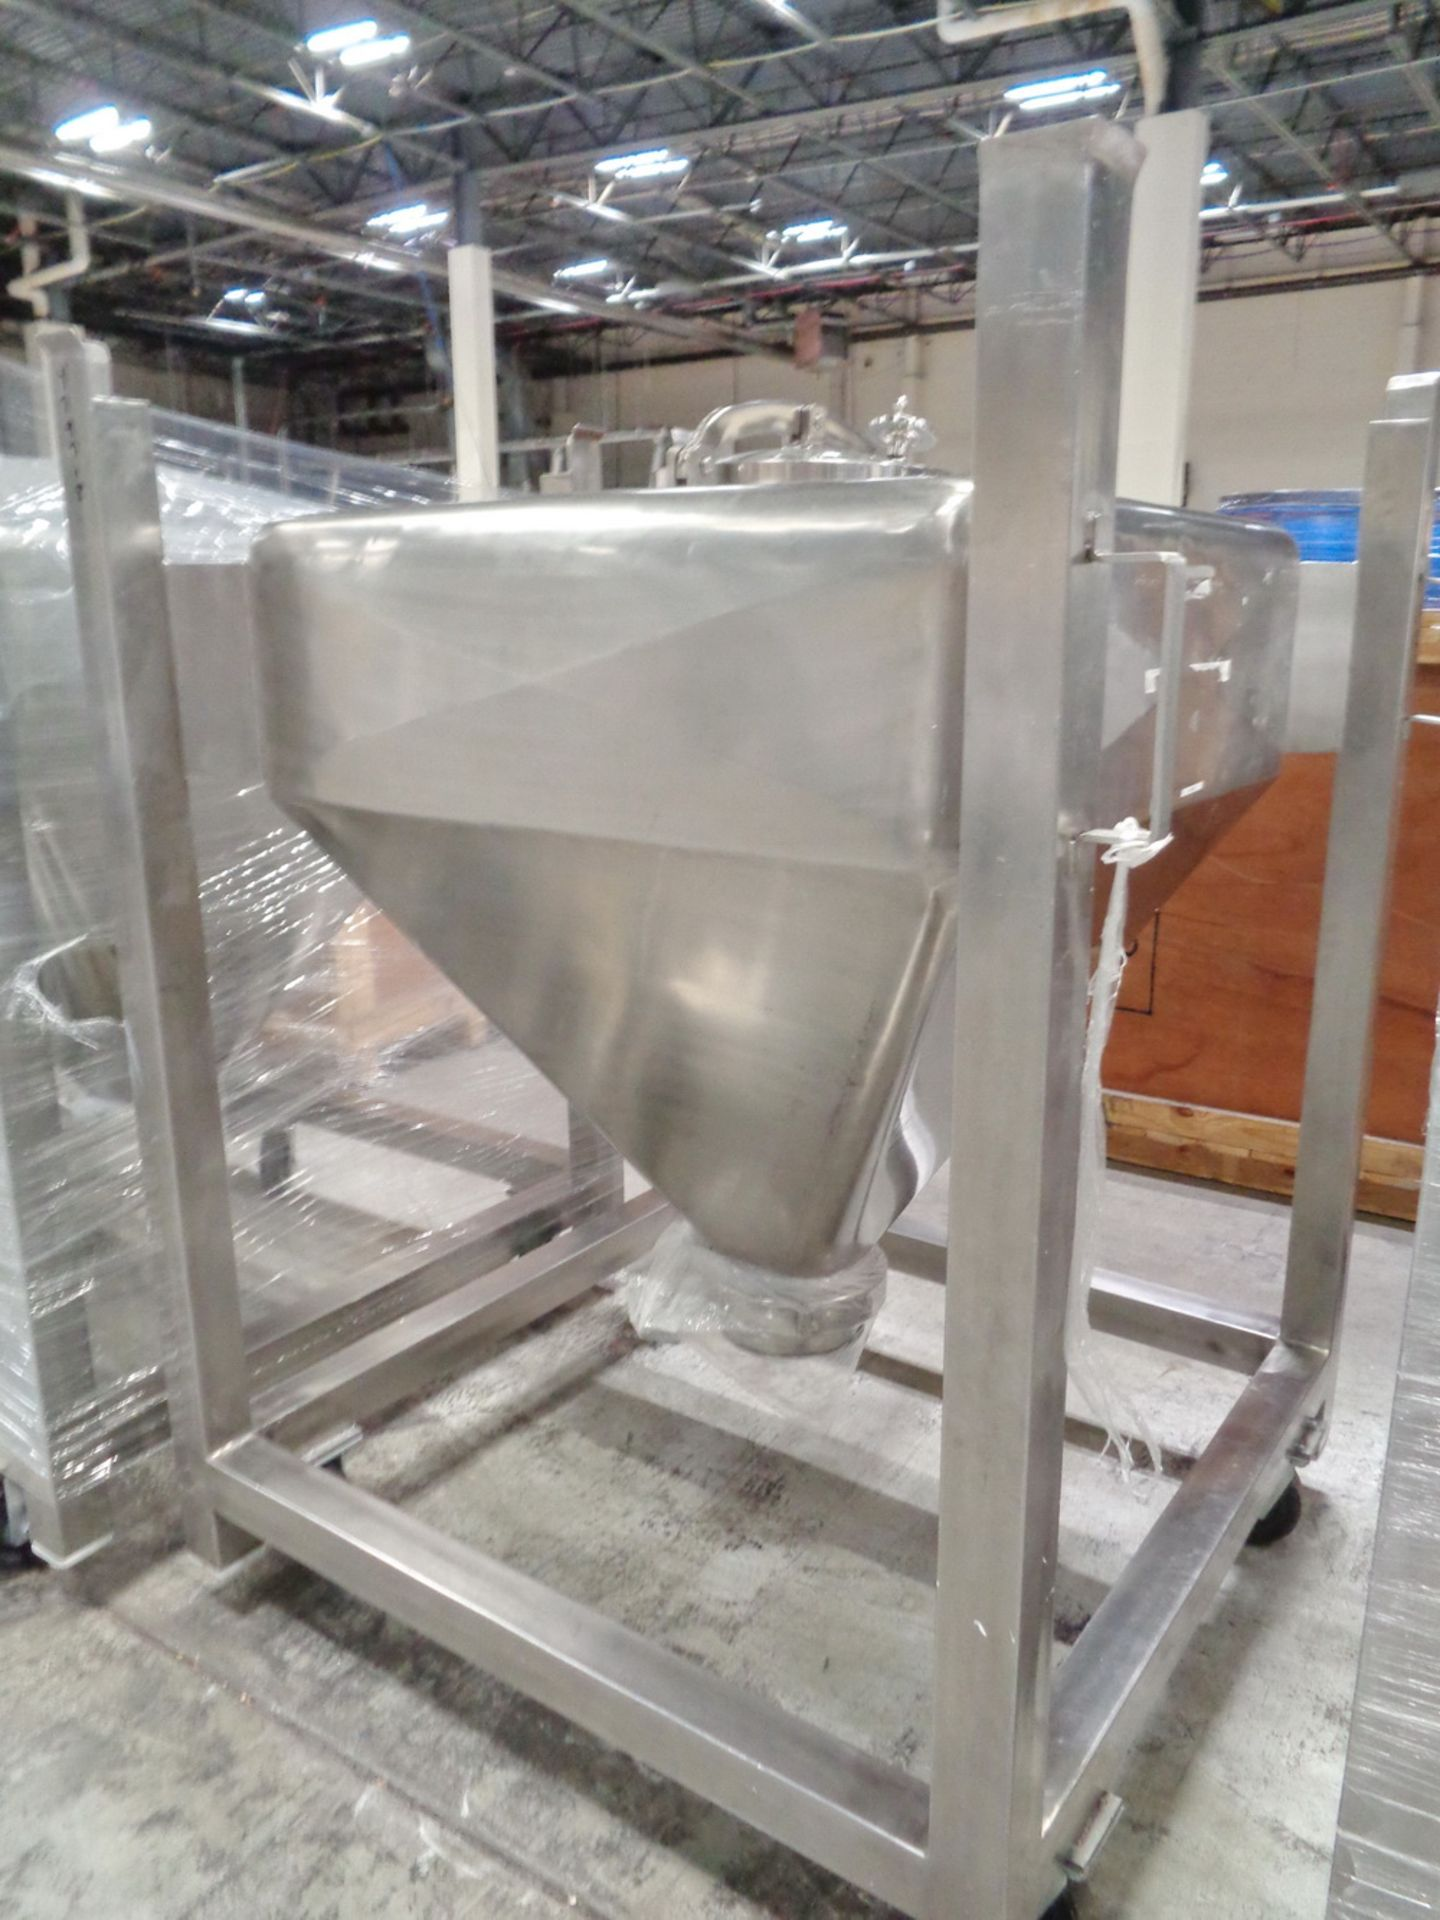 Lot 215 - SS Powder Tote, 500 Liters, no valve on this tote